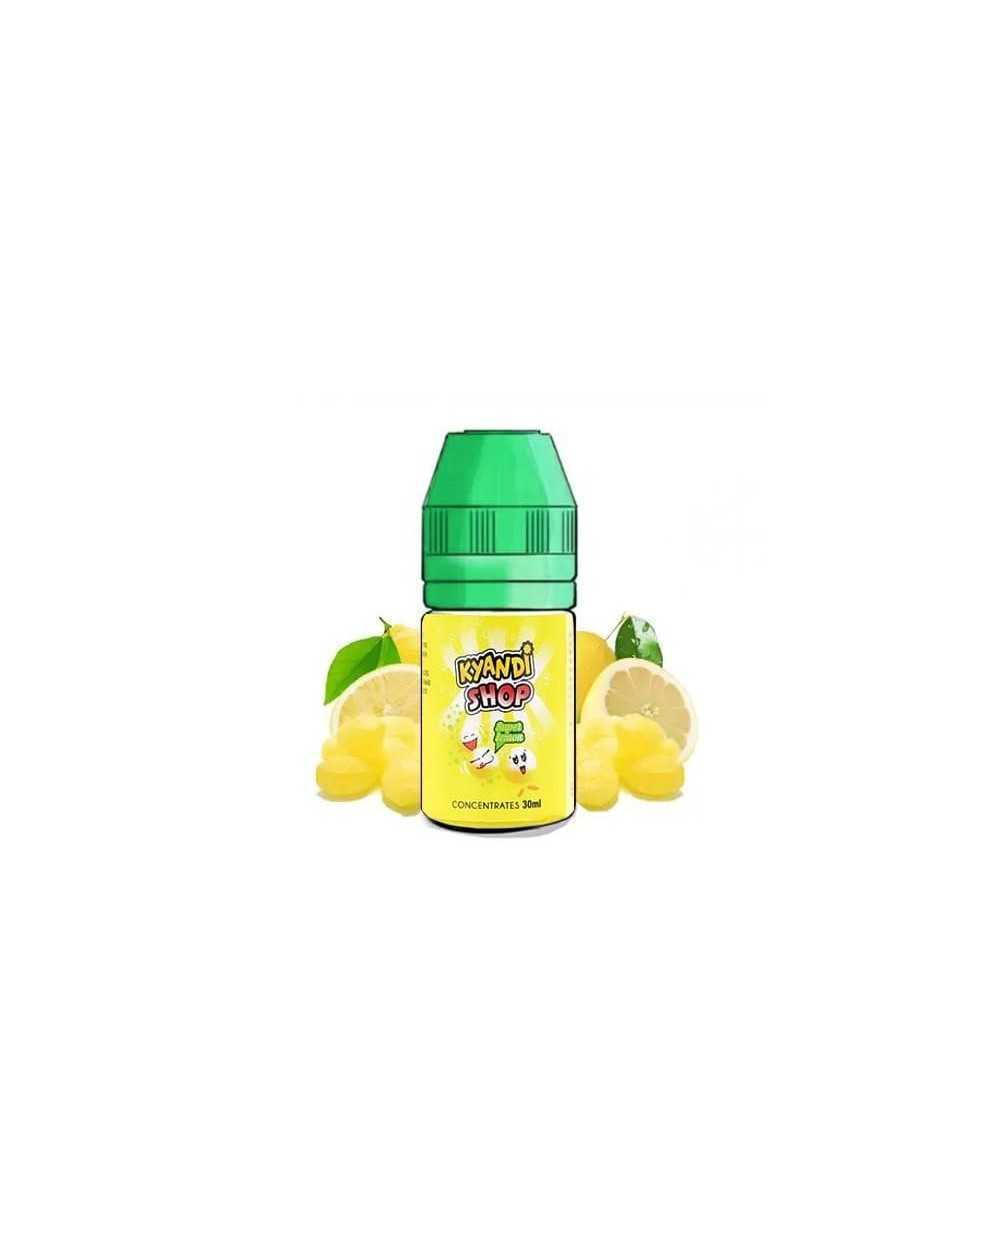 Concentré Super Lemon 30ml - Kyandi Shop-1